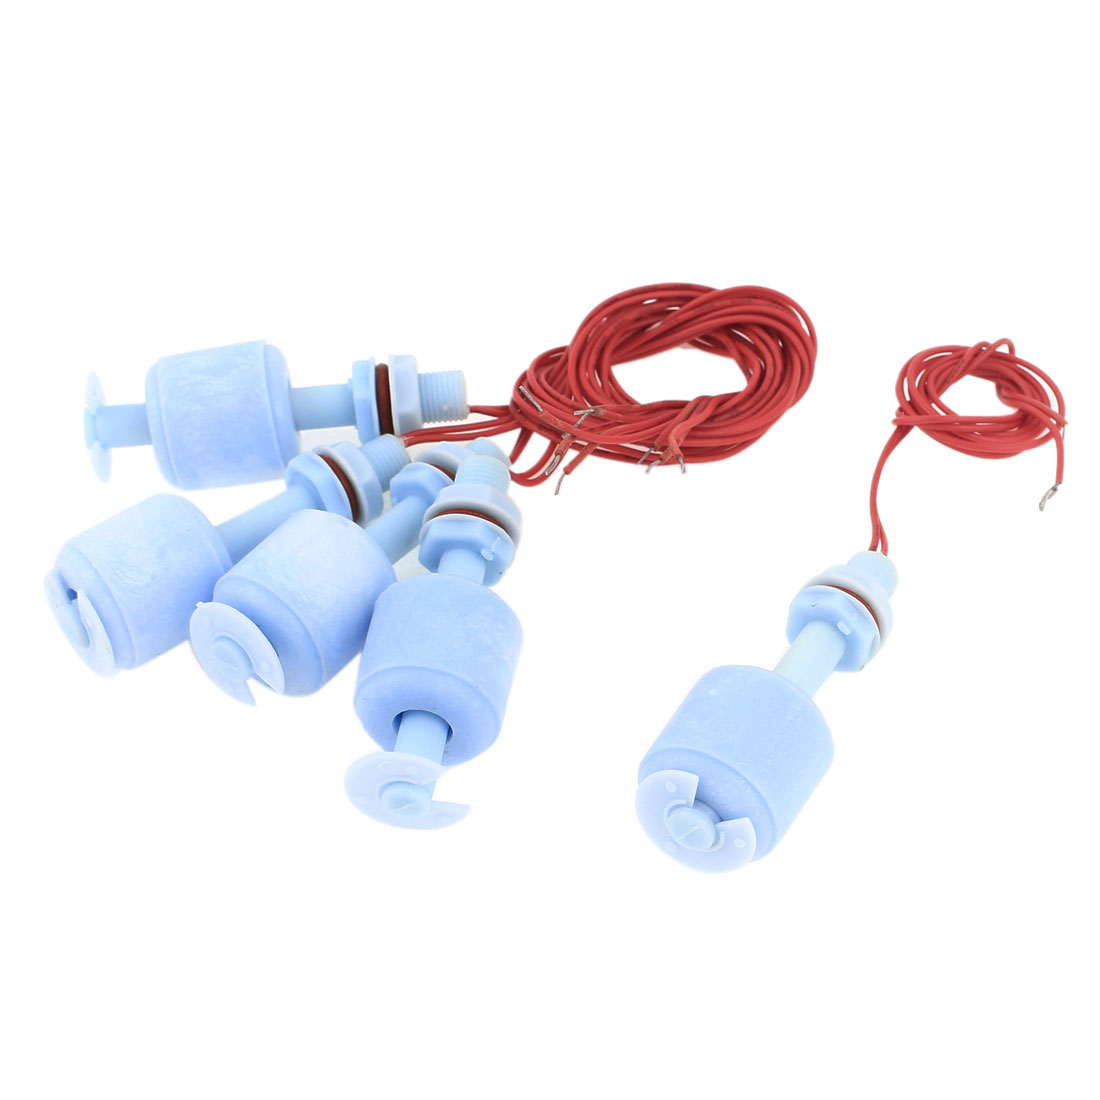 5 Pcs ZP5210 Aquarium Liquid Water Level Sensor Float Floating Switch